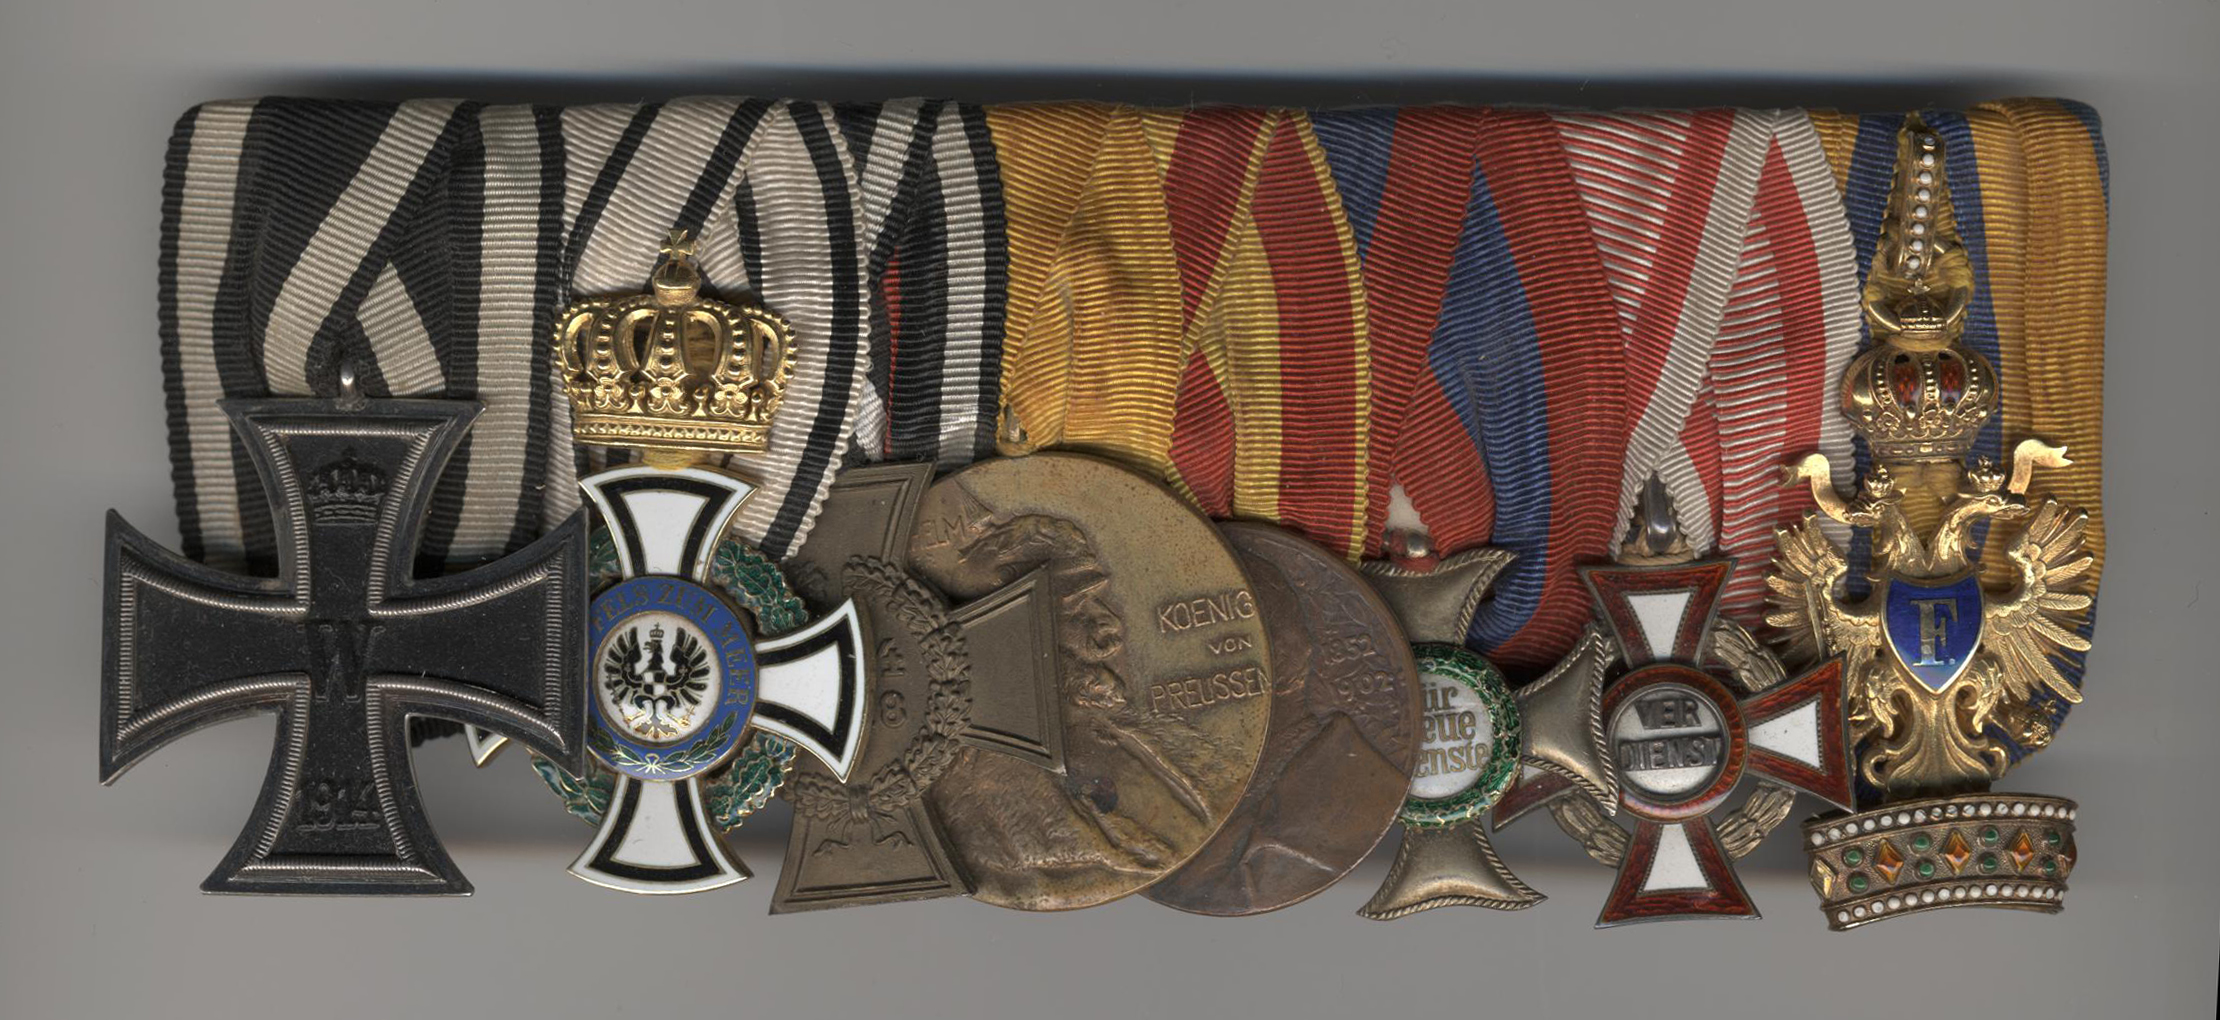 Img 1: The medal bar of Prince Schoenburg-Waldenburg